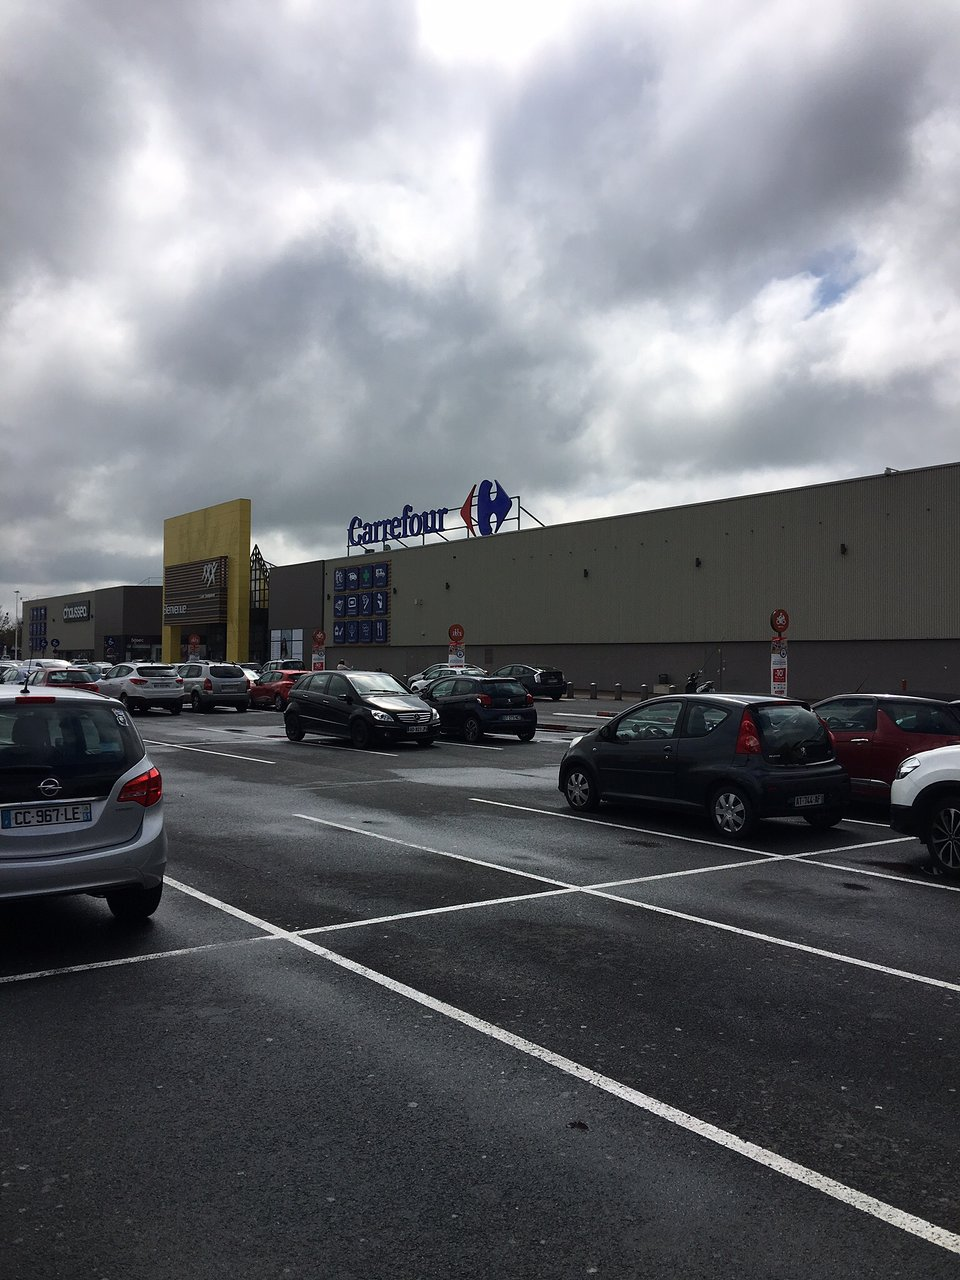 Spa Chalons En Champagne carrefour (chalons-en-champagne) - 2020 all you need to know